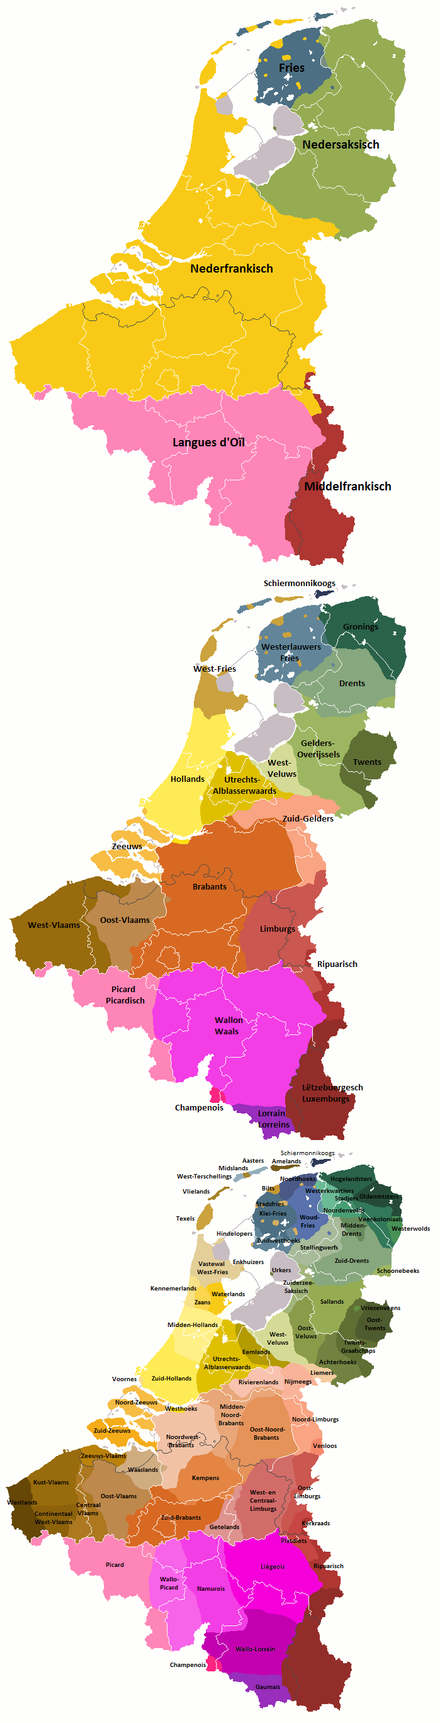 Map showing the dialects spoken in the Benelux: many people in Flanders speak a dialect and the common Flemish, and understand spoken Dutch; in writing, the dialects are hardly used, while Flemish and Dutch are nearly identical in this regard Languages Benelux.PNG